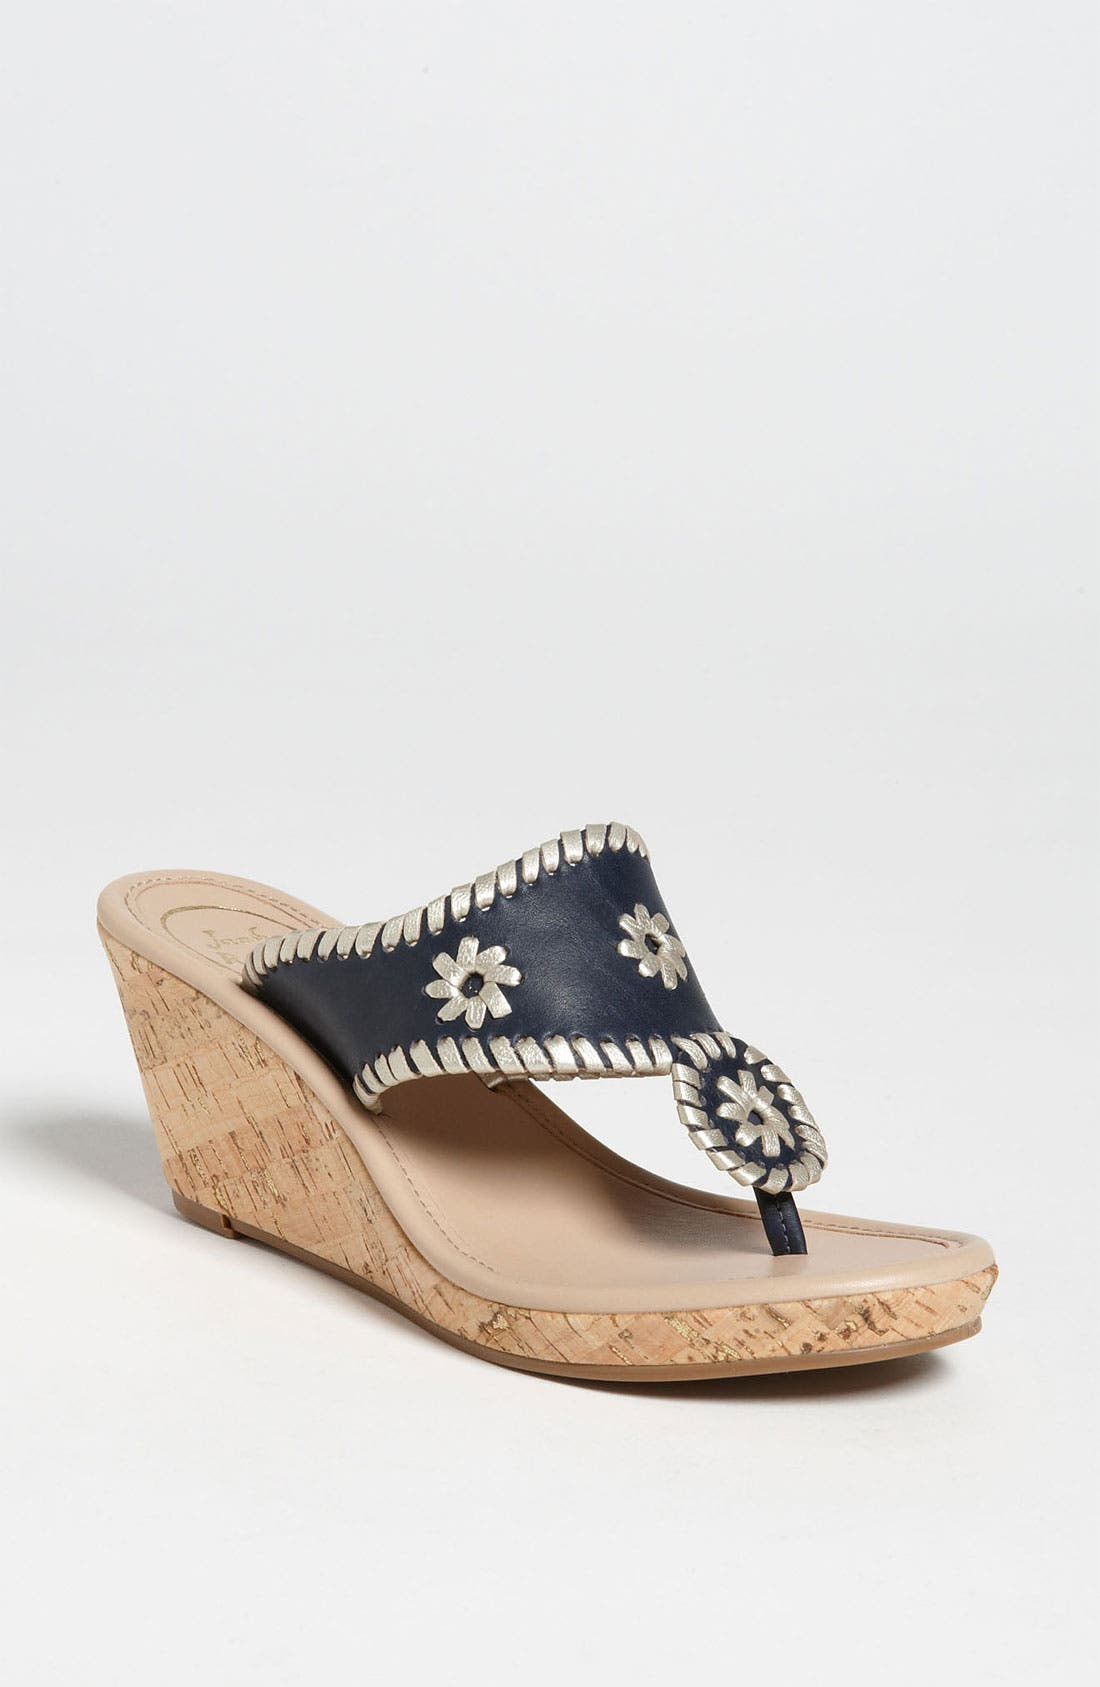 Alternate Image 1 Selected - Jack Rogers 'Marbella' Cork Wedge Sandal